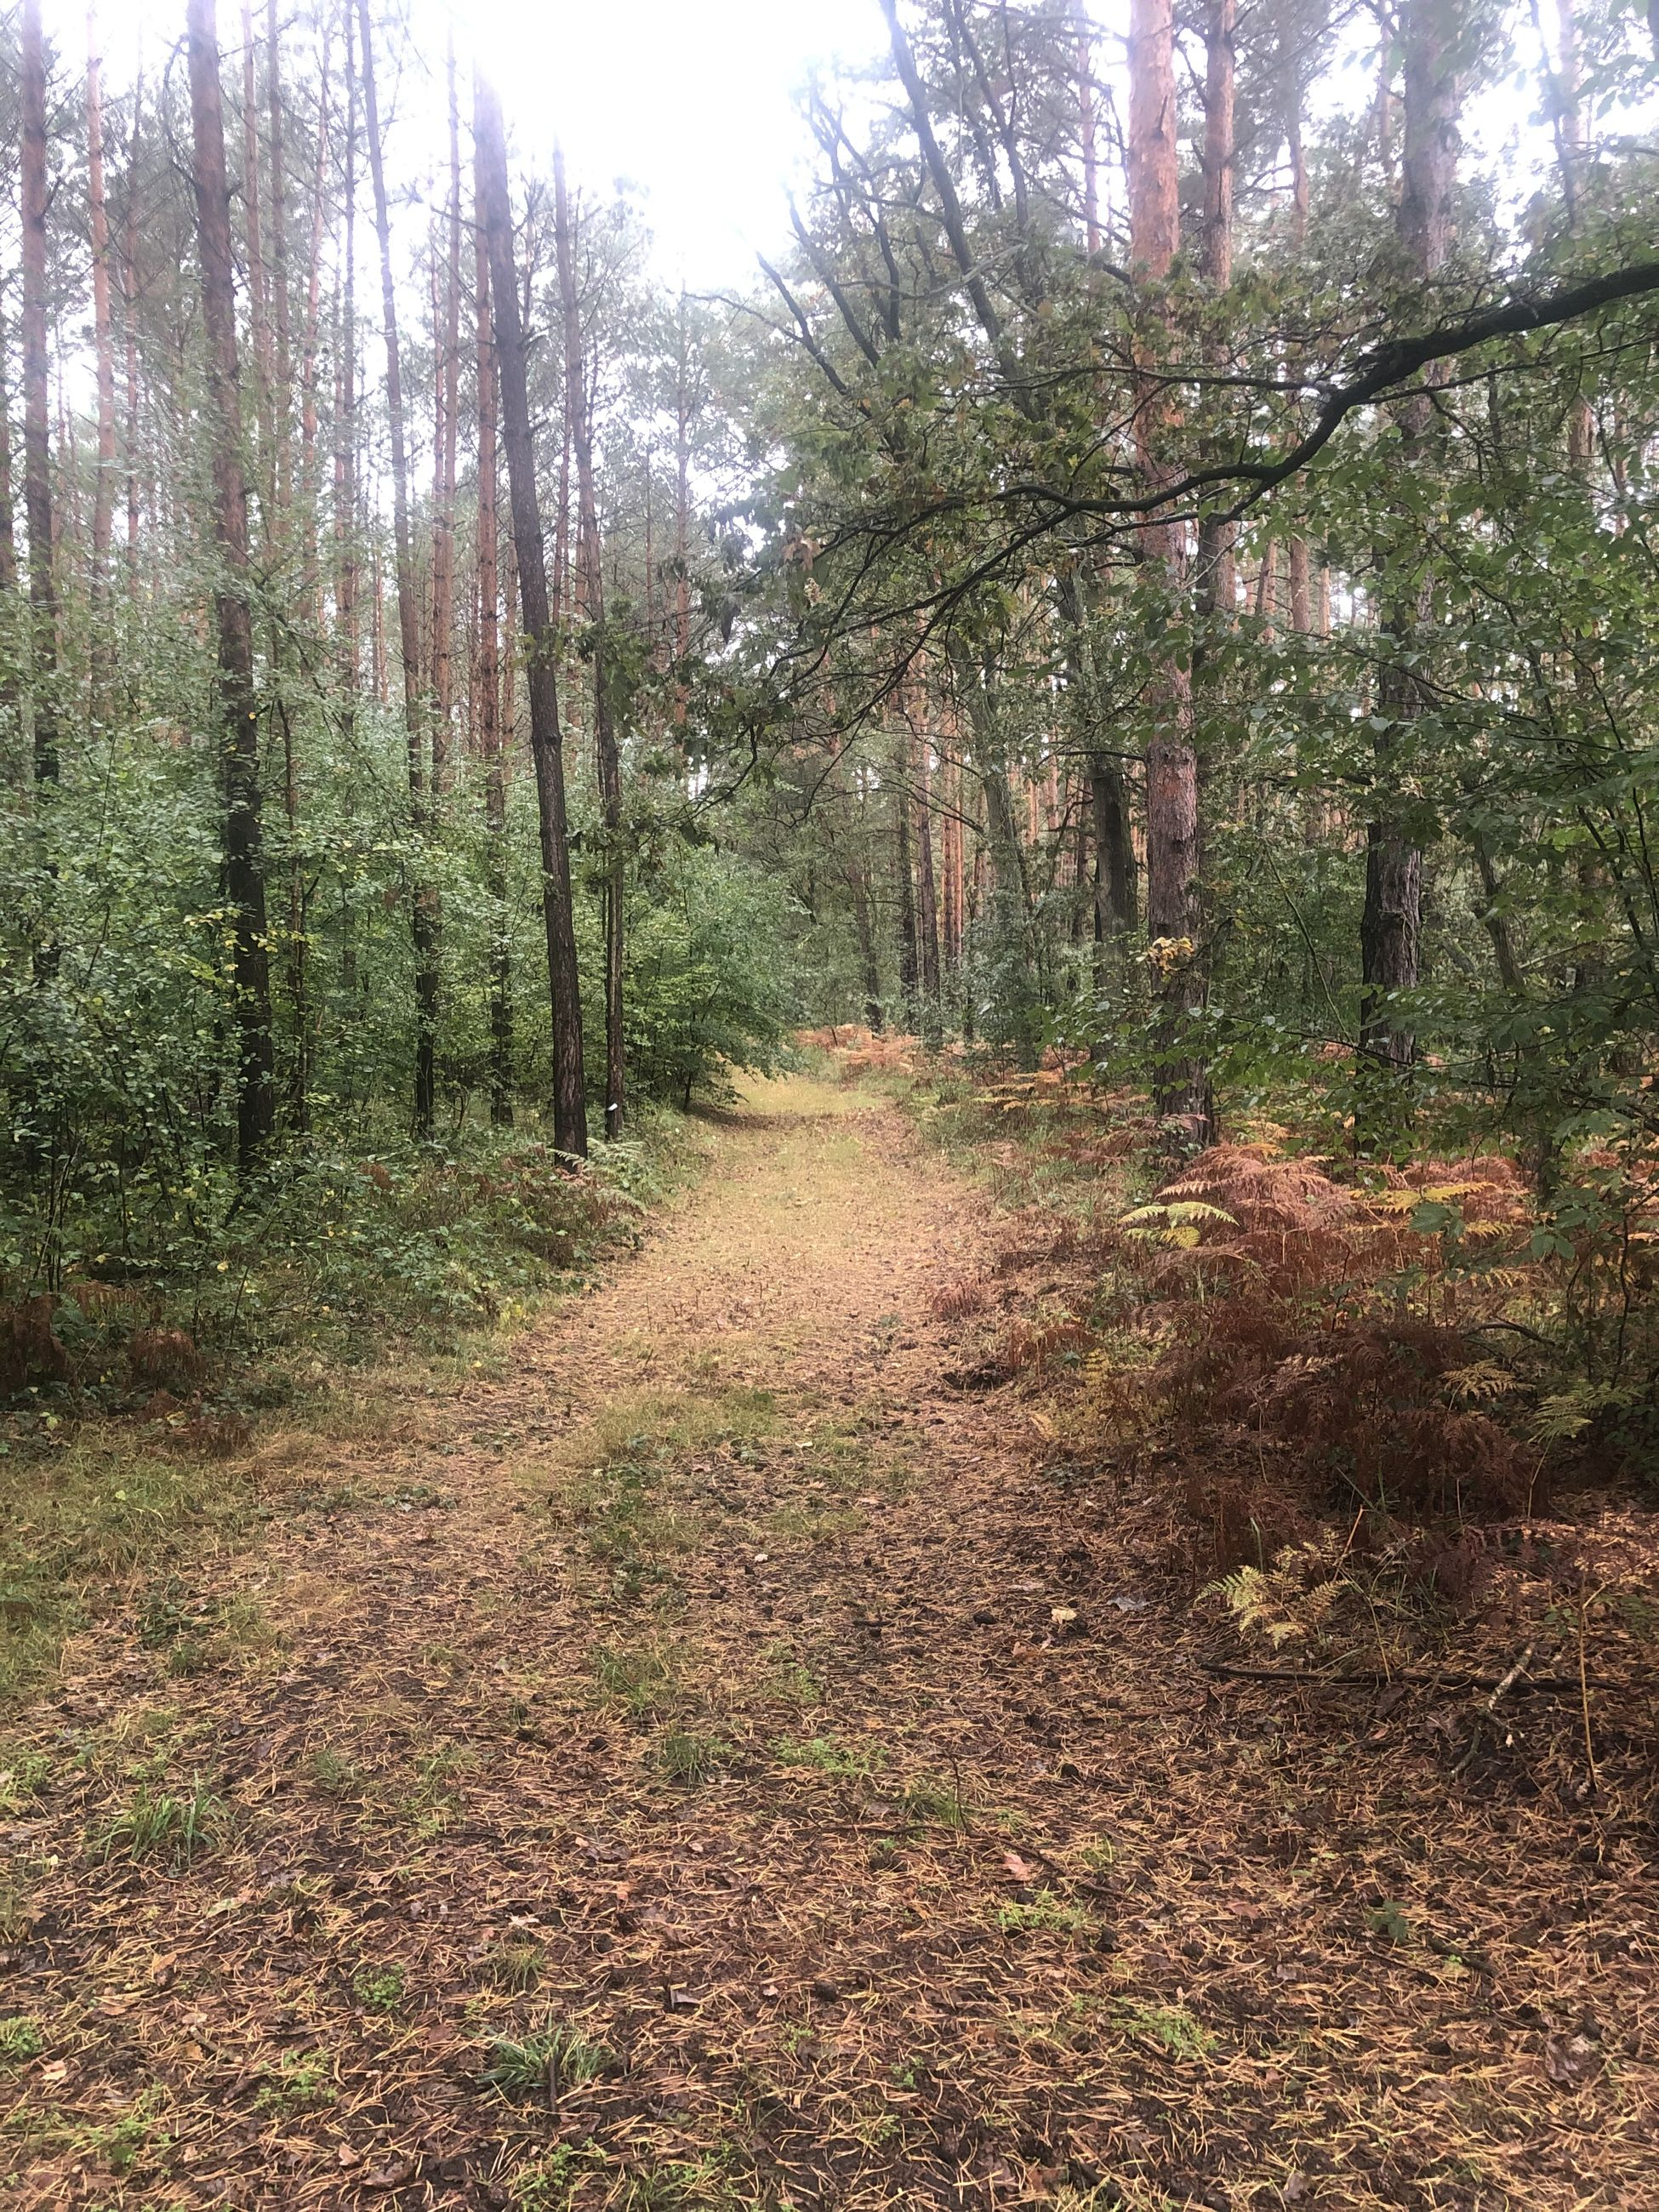 forest, land, tree, plant, direction, tranquility, the way forward, footpath, nature, woodland, no people, beauty in nature, growth, tranquil scene, day, non-urban scene, scenics - nature, landscape, environment, outdoors, trail